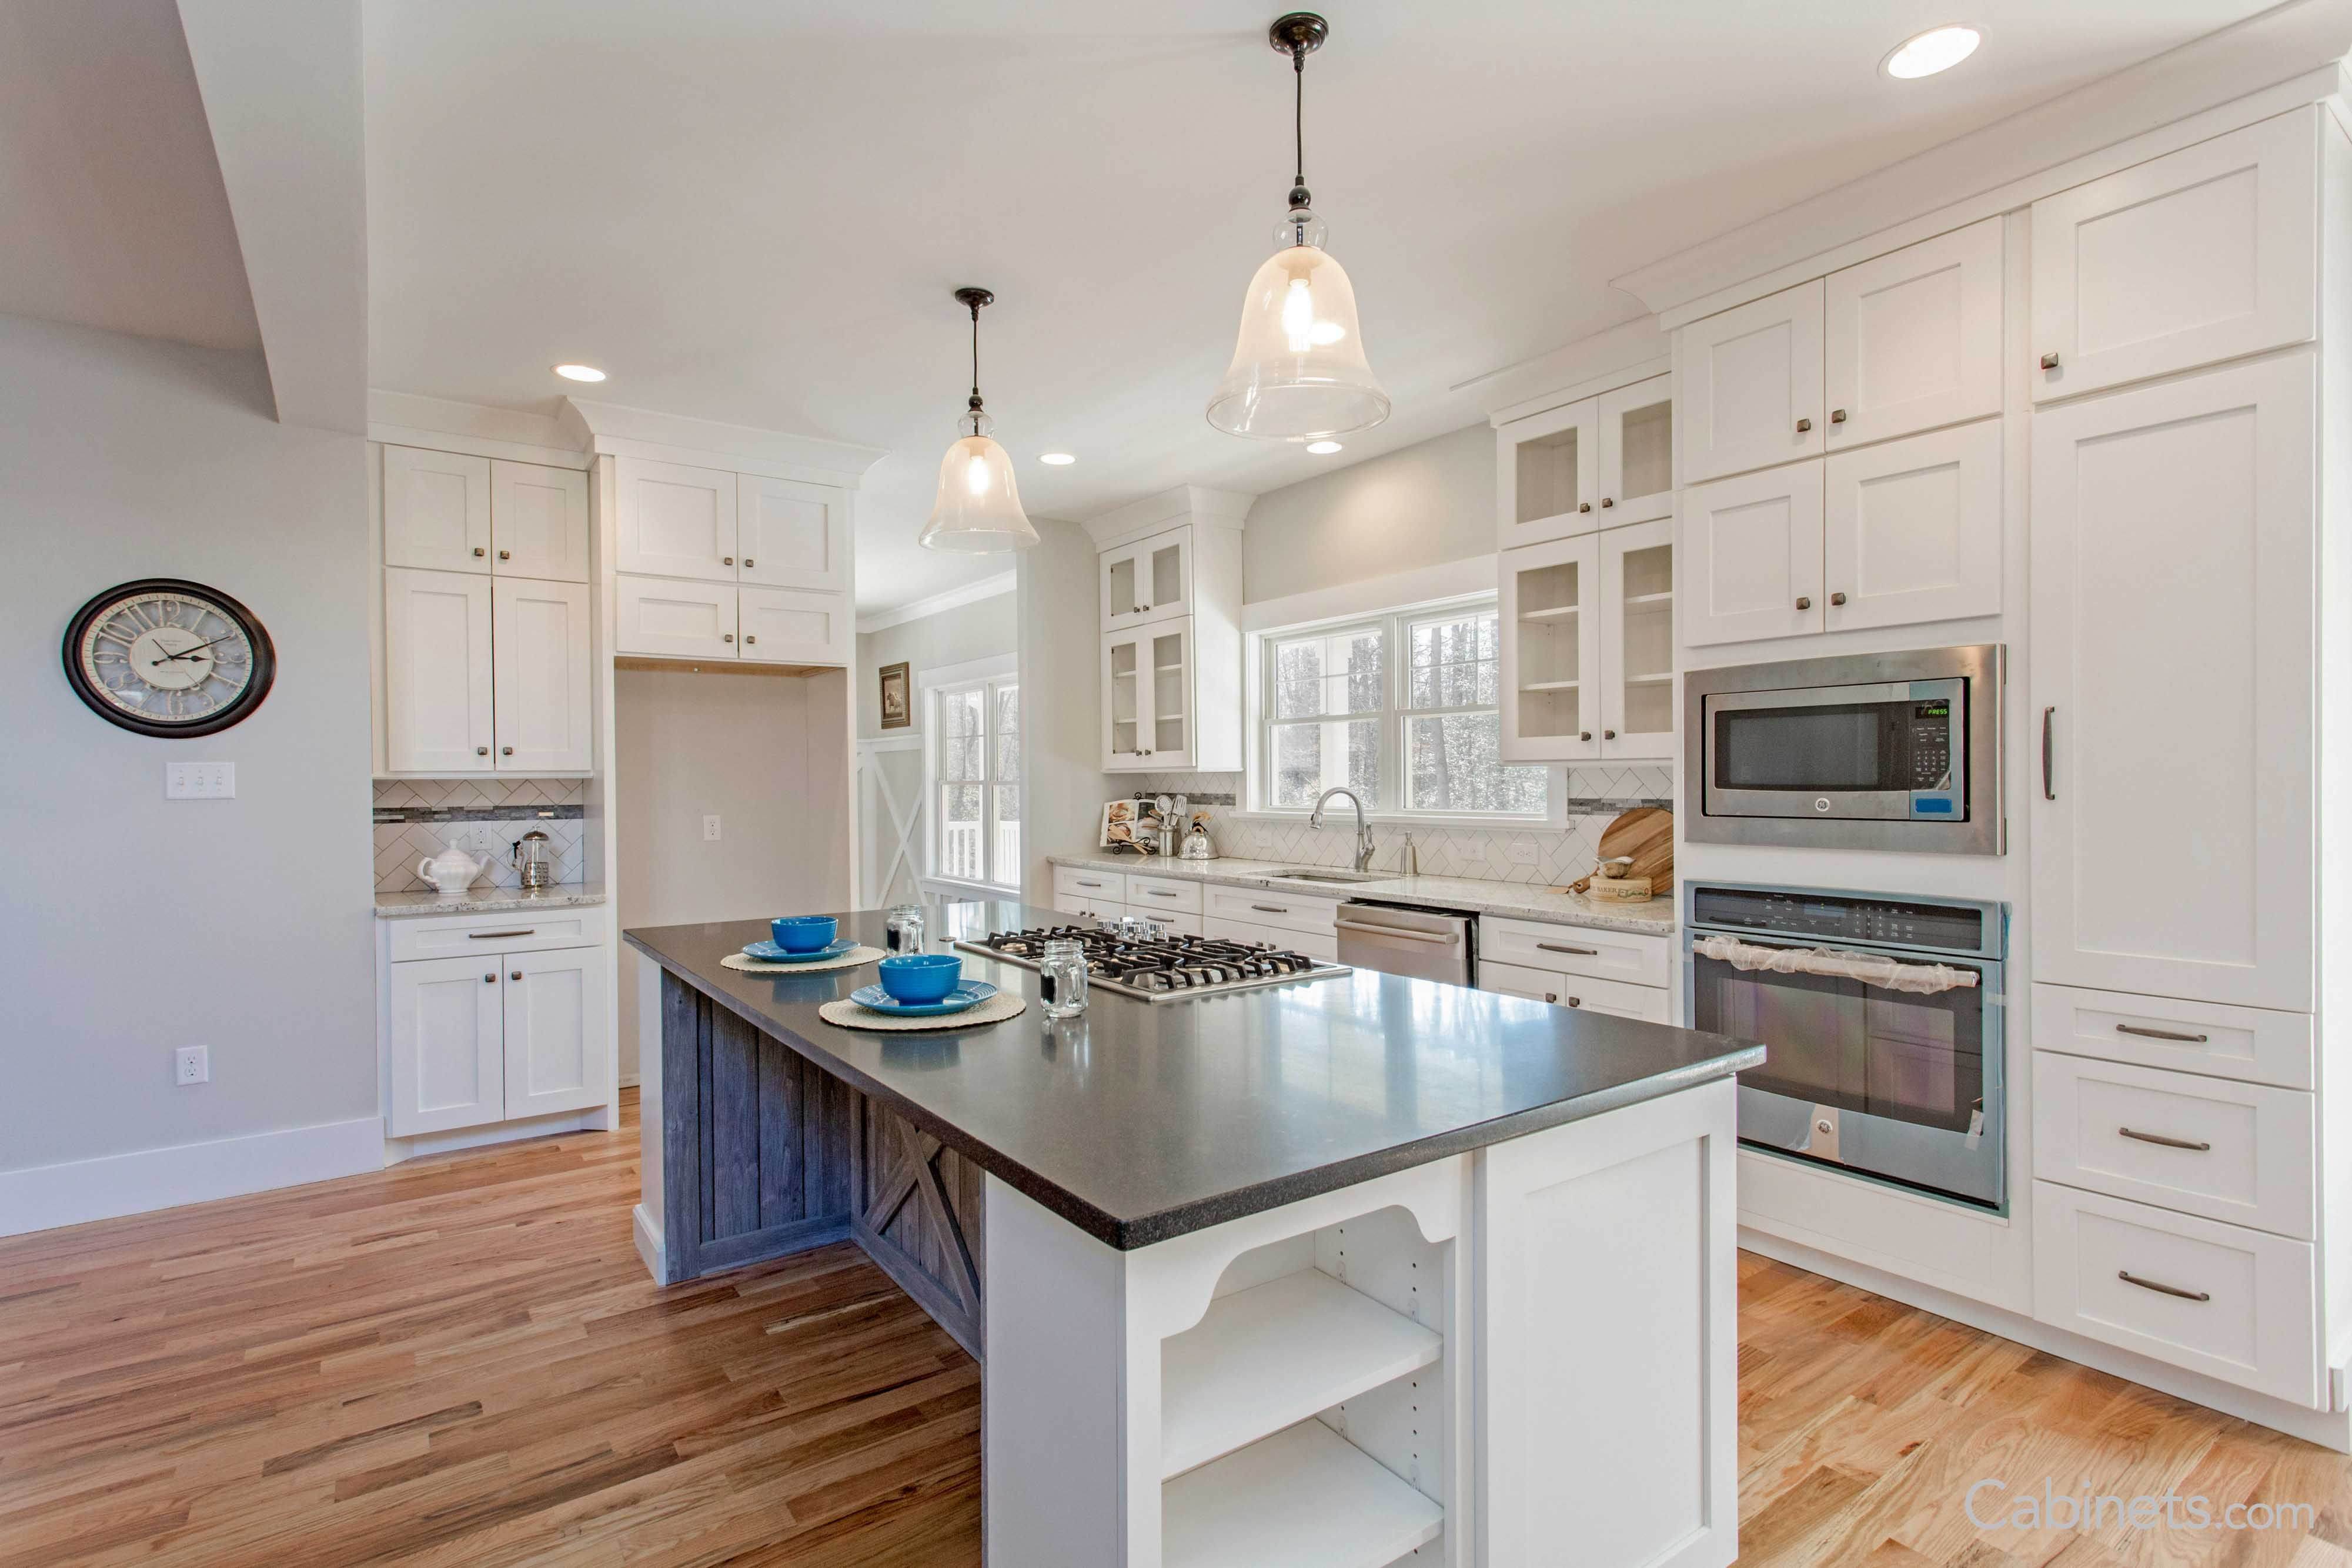 An Open Floor Plan Kitchen With Shaker Style Cabinets Built In Appliances And Bookcase Cabinets On The Farmhouse Kitchen Dream Pantry Open Floor Plan Kitchen